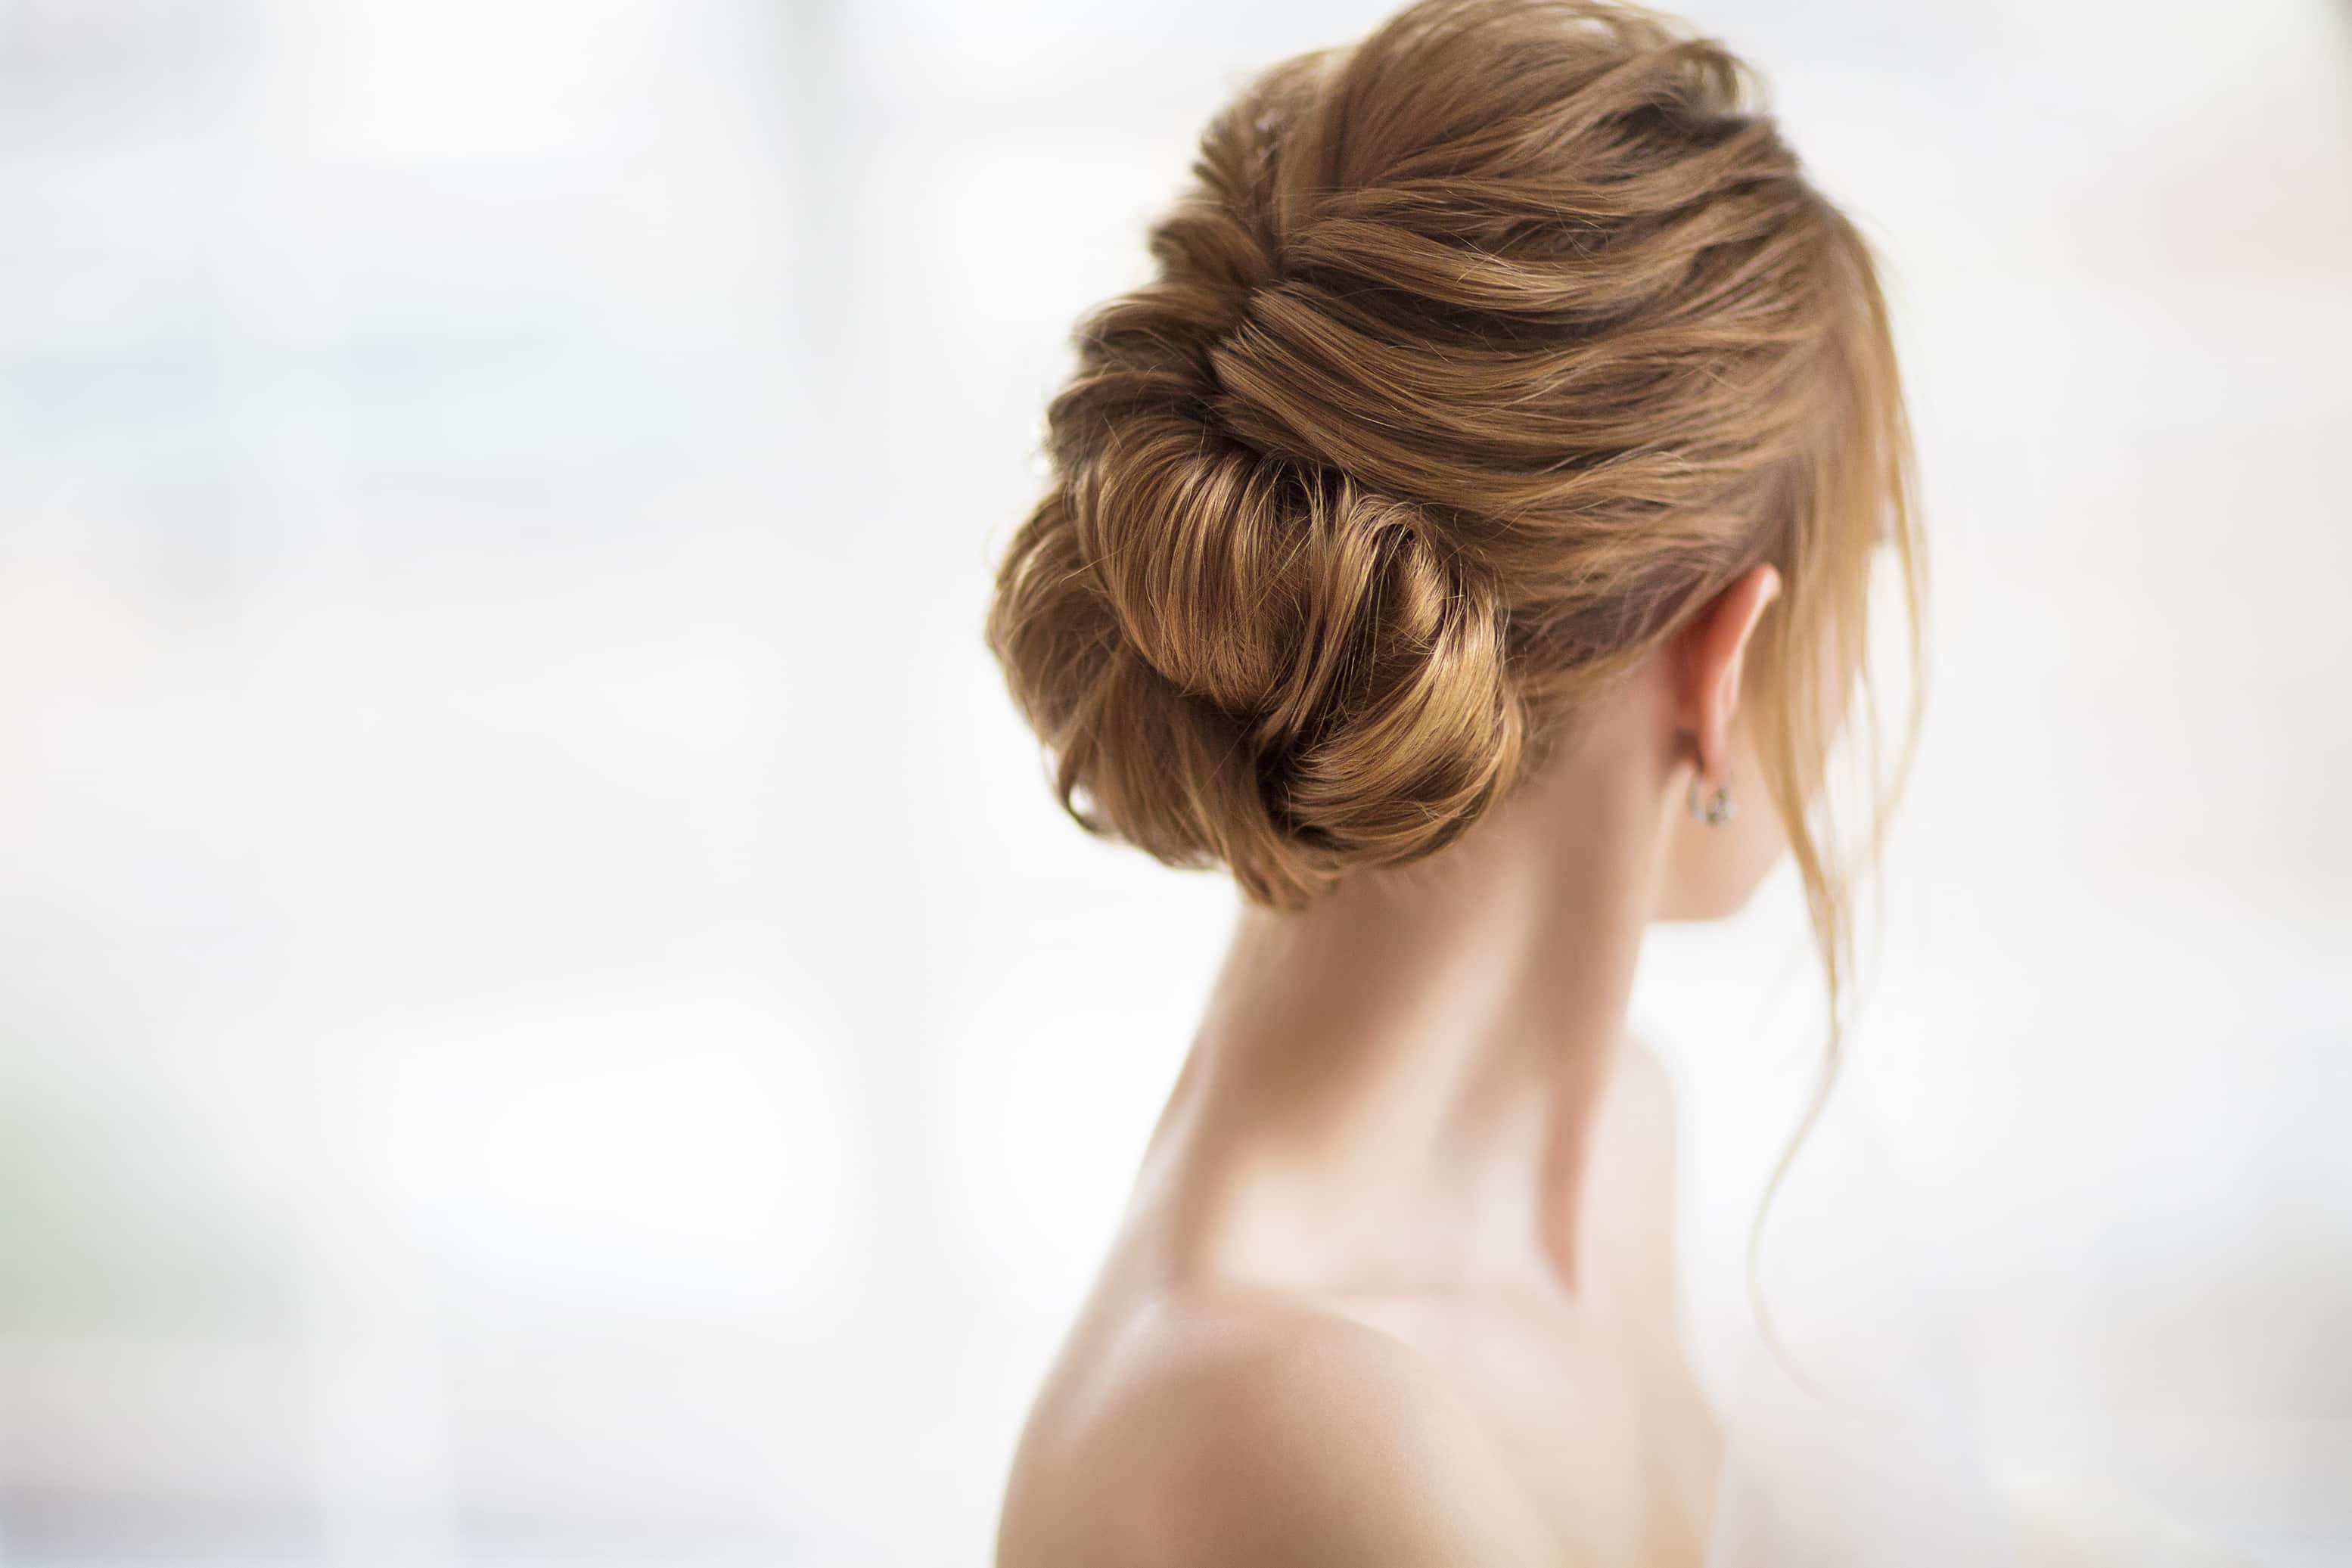 Beautiful elegant wedding hairstyle-min.jpeg